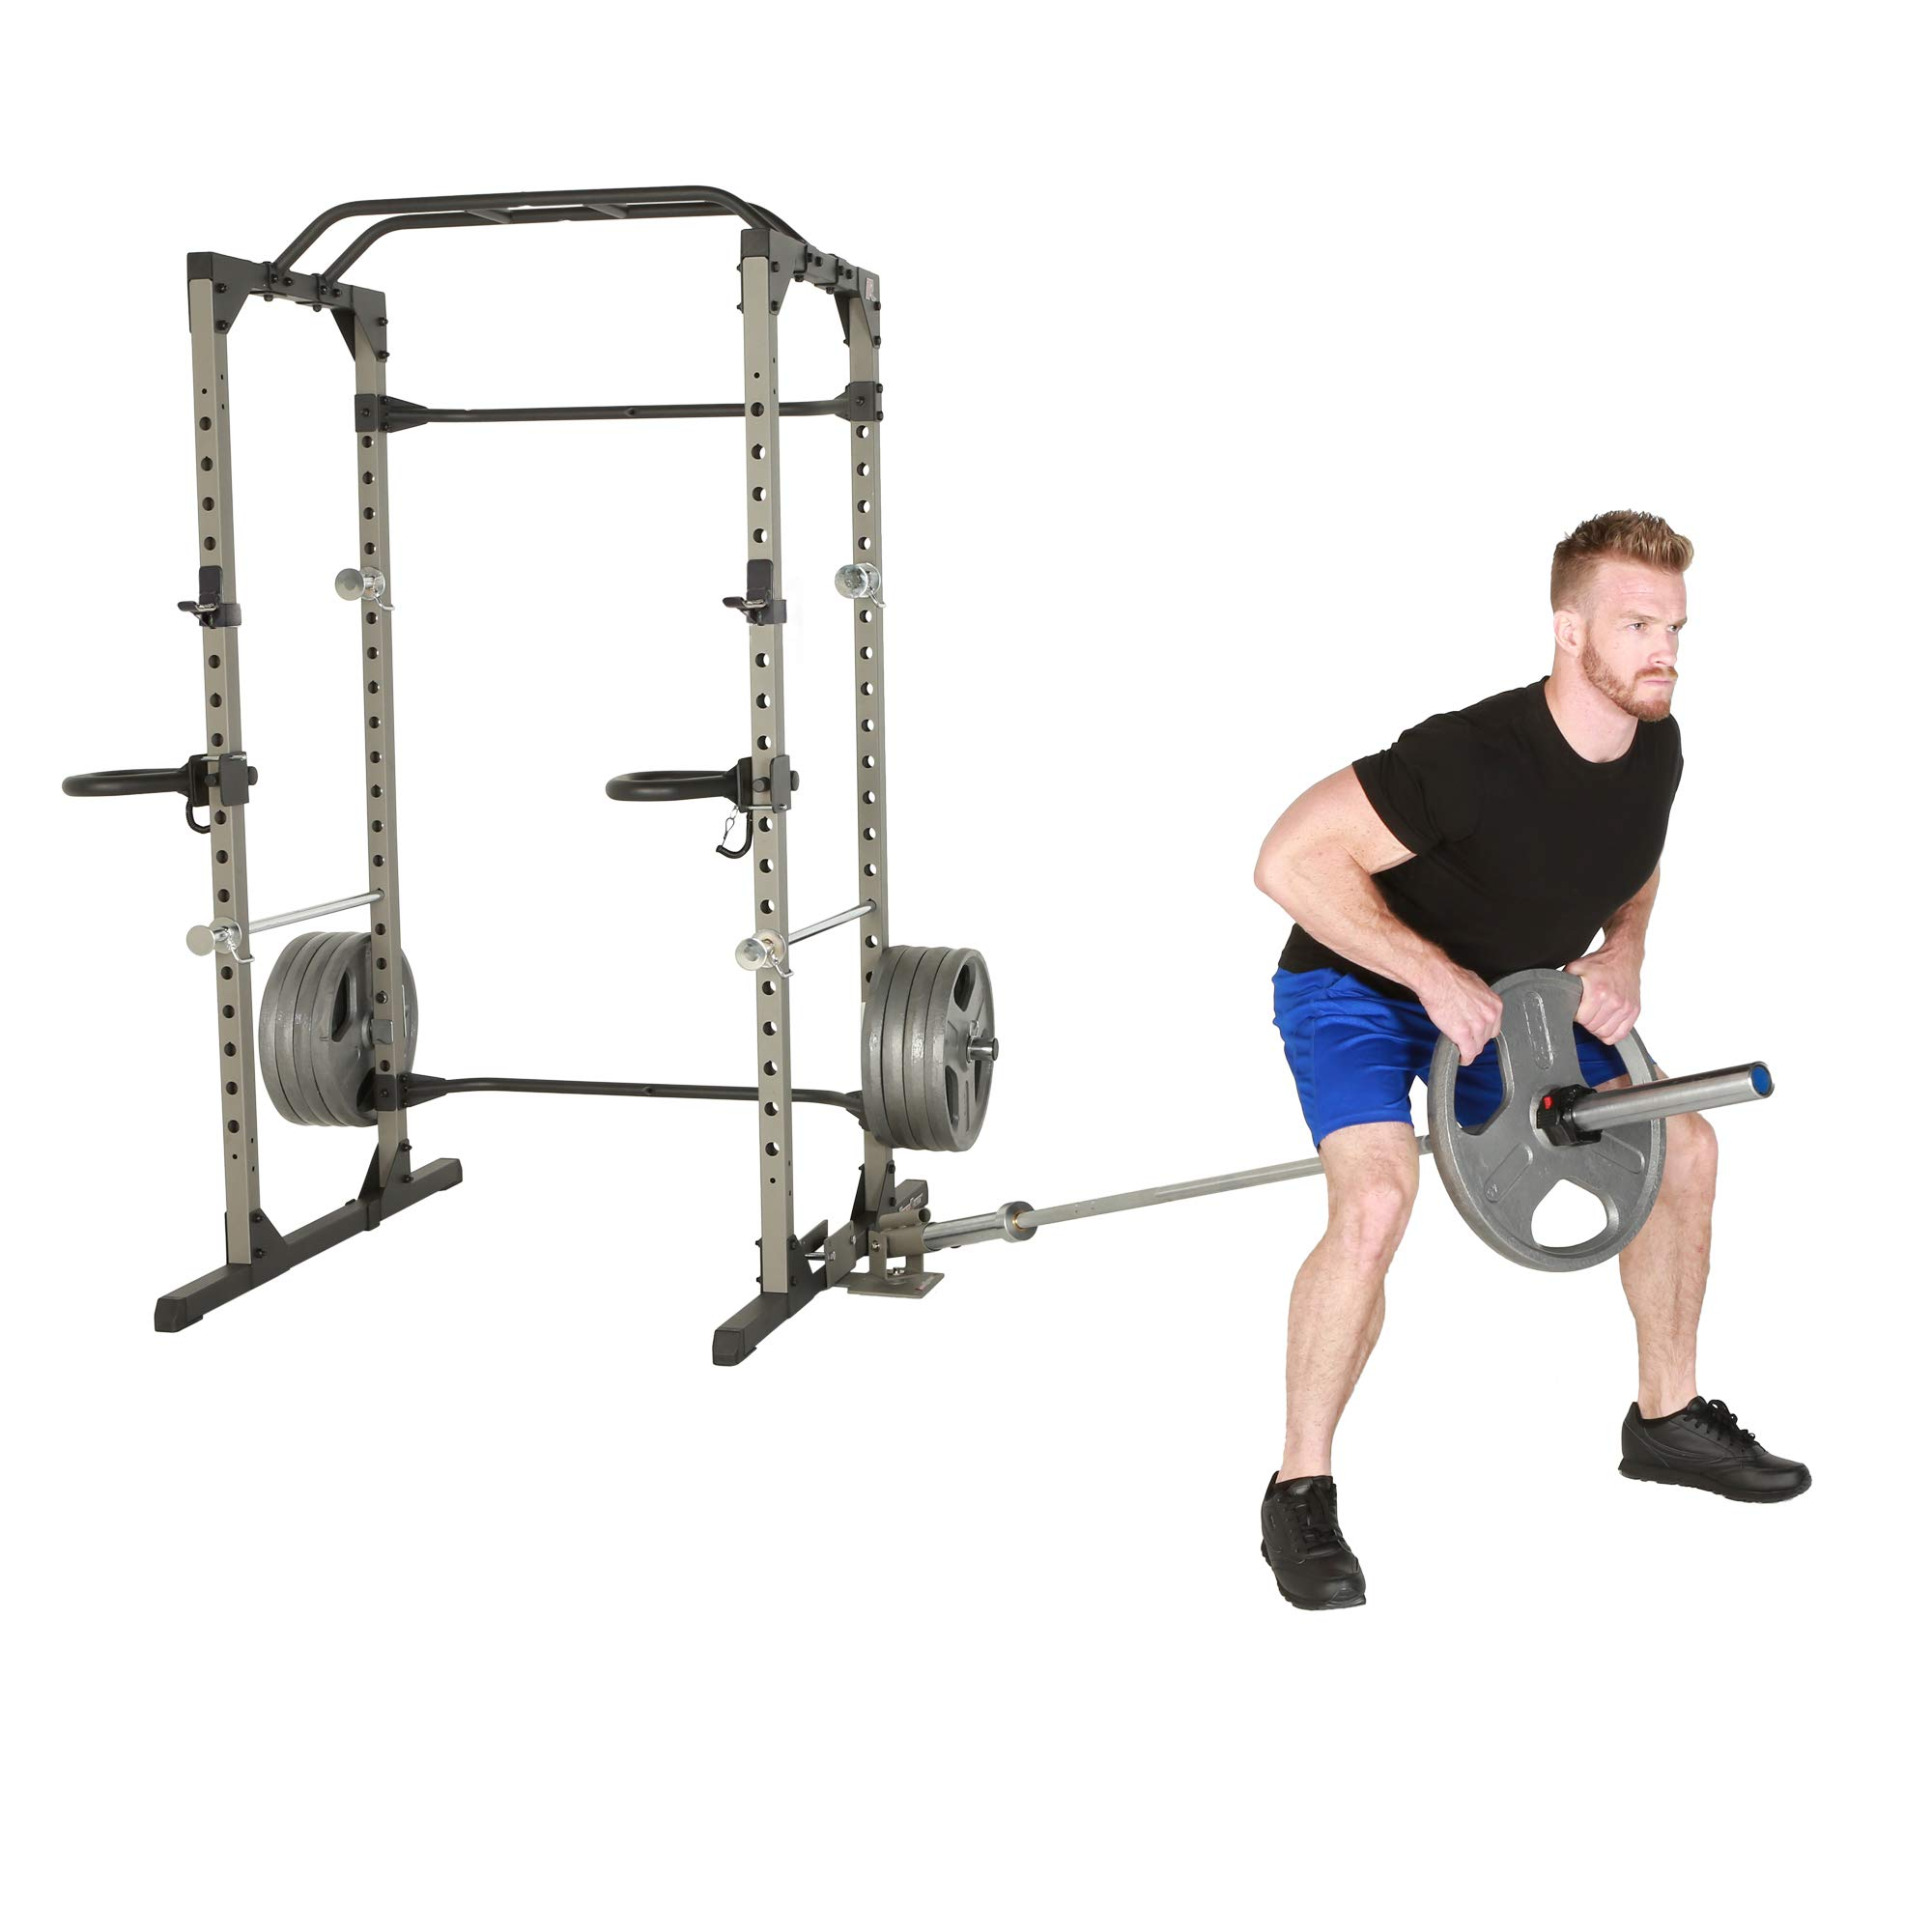 Fitness Reality 2819 Attachment Set for 2''x2'' Steel Tubing Power Cages by Fitness Reality (Image #13)